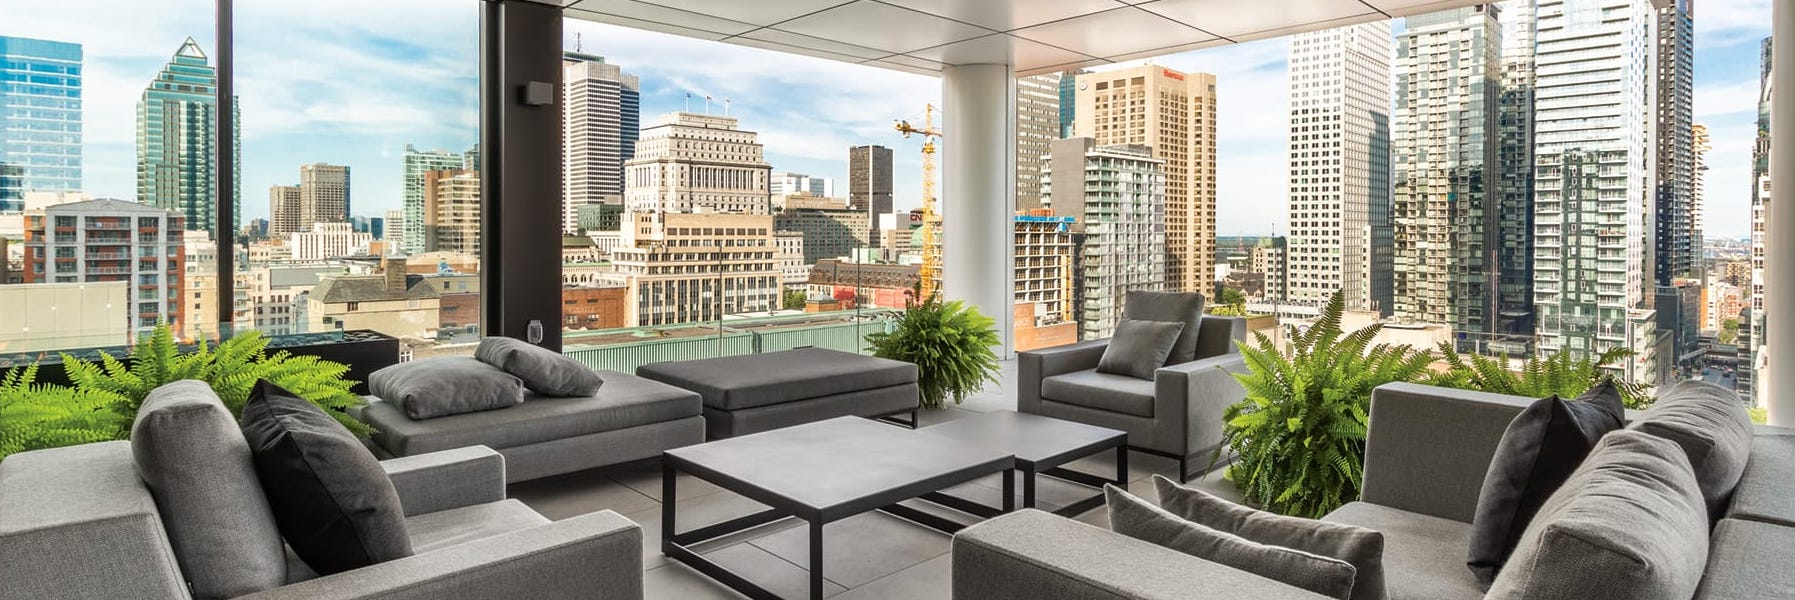 High-Rising Expectations: Condos Representing the Pinnacle of Urban Luxury